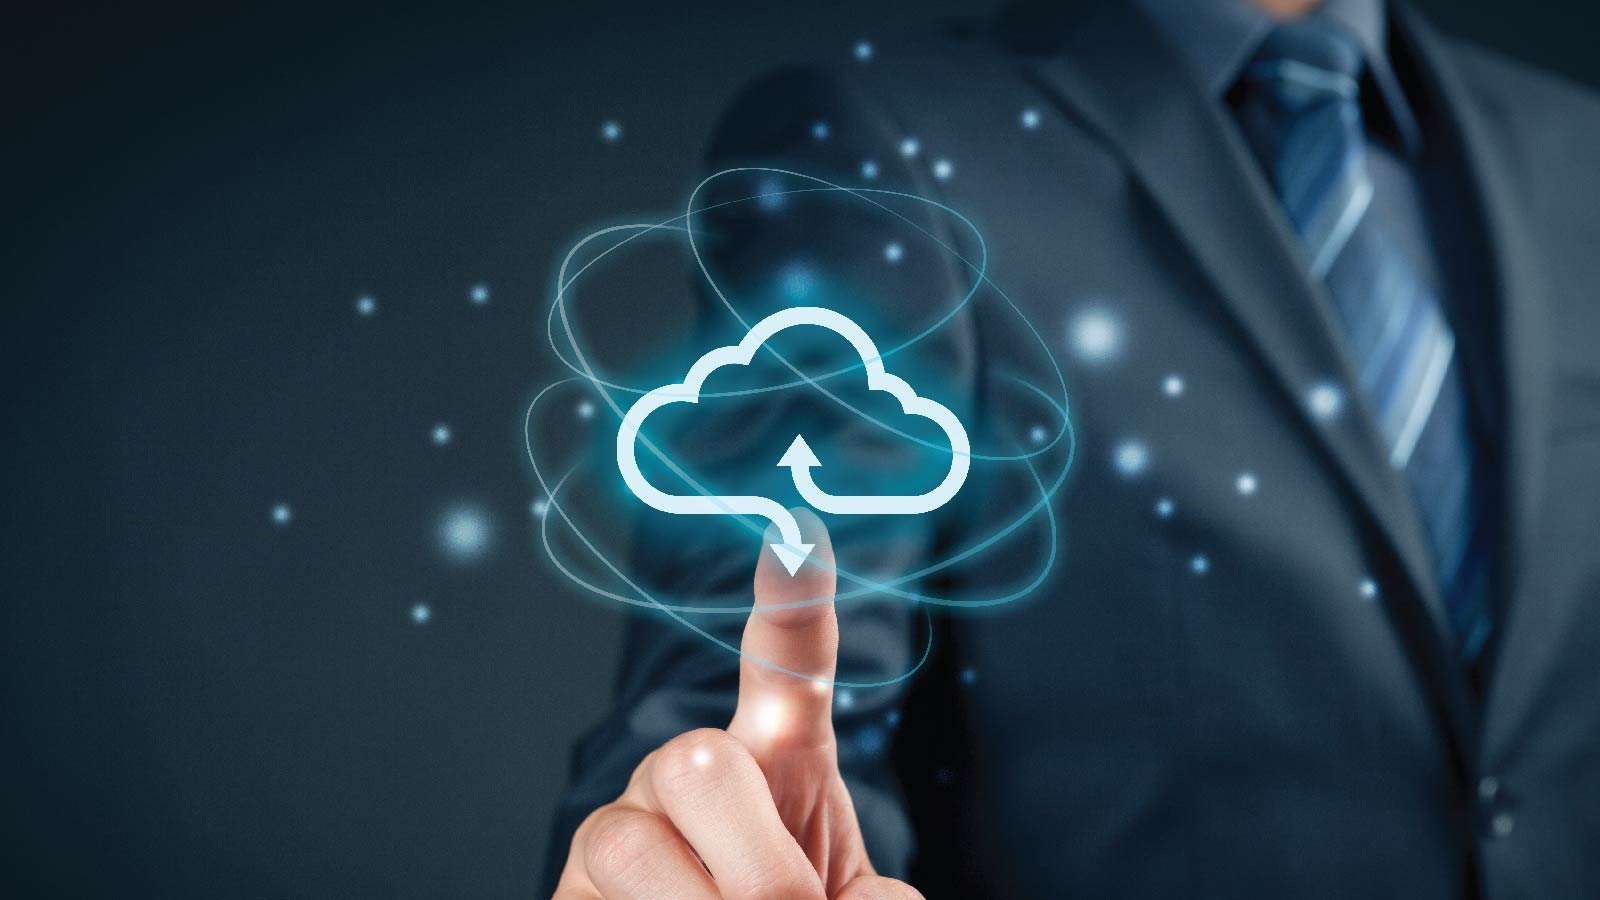 More CIOs Are Prioritizing Cloud Solutions with the Help of AIOps